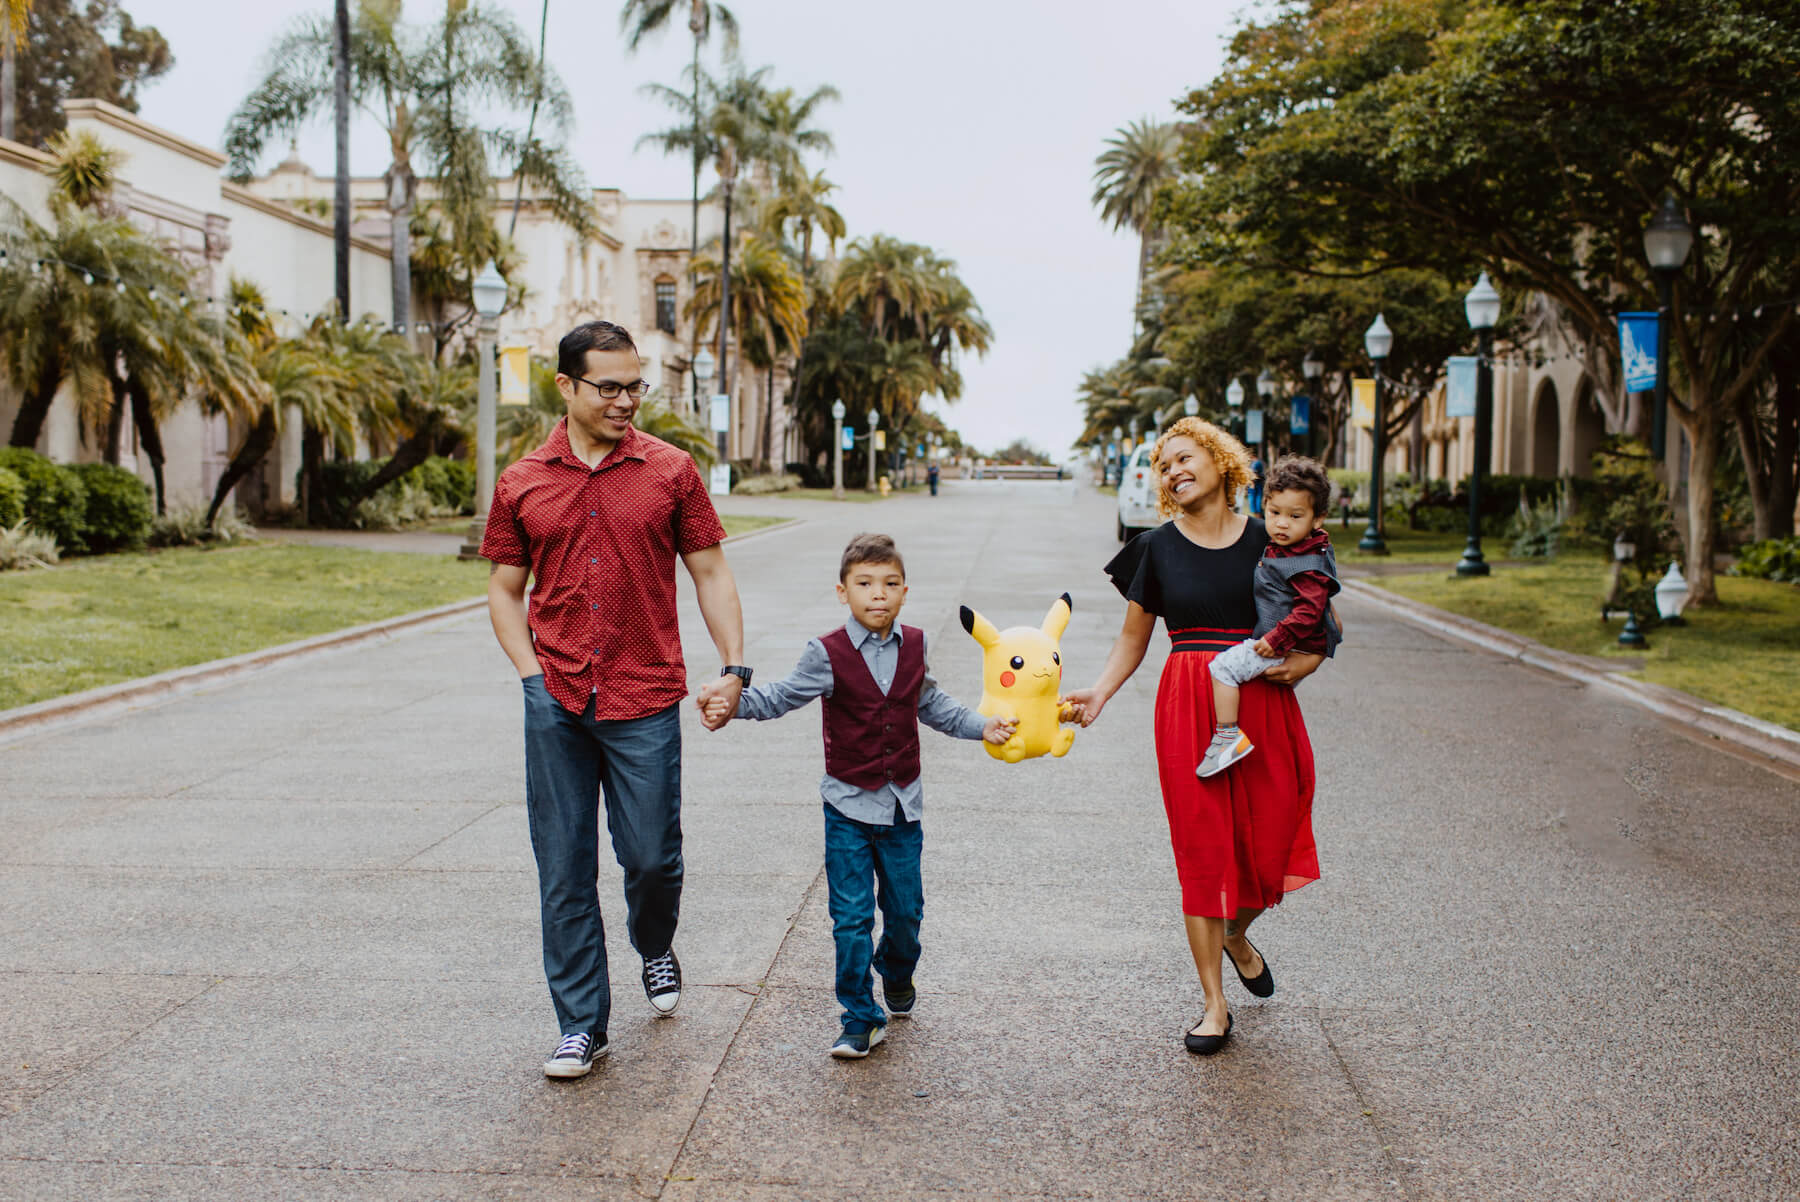 a family holding hands and walking down the street in San Diego, California